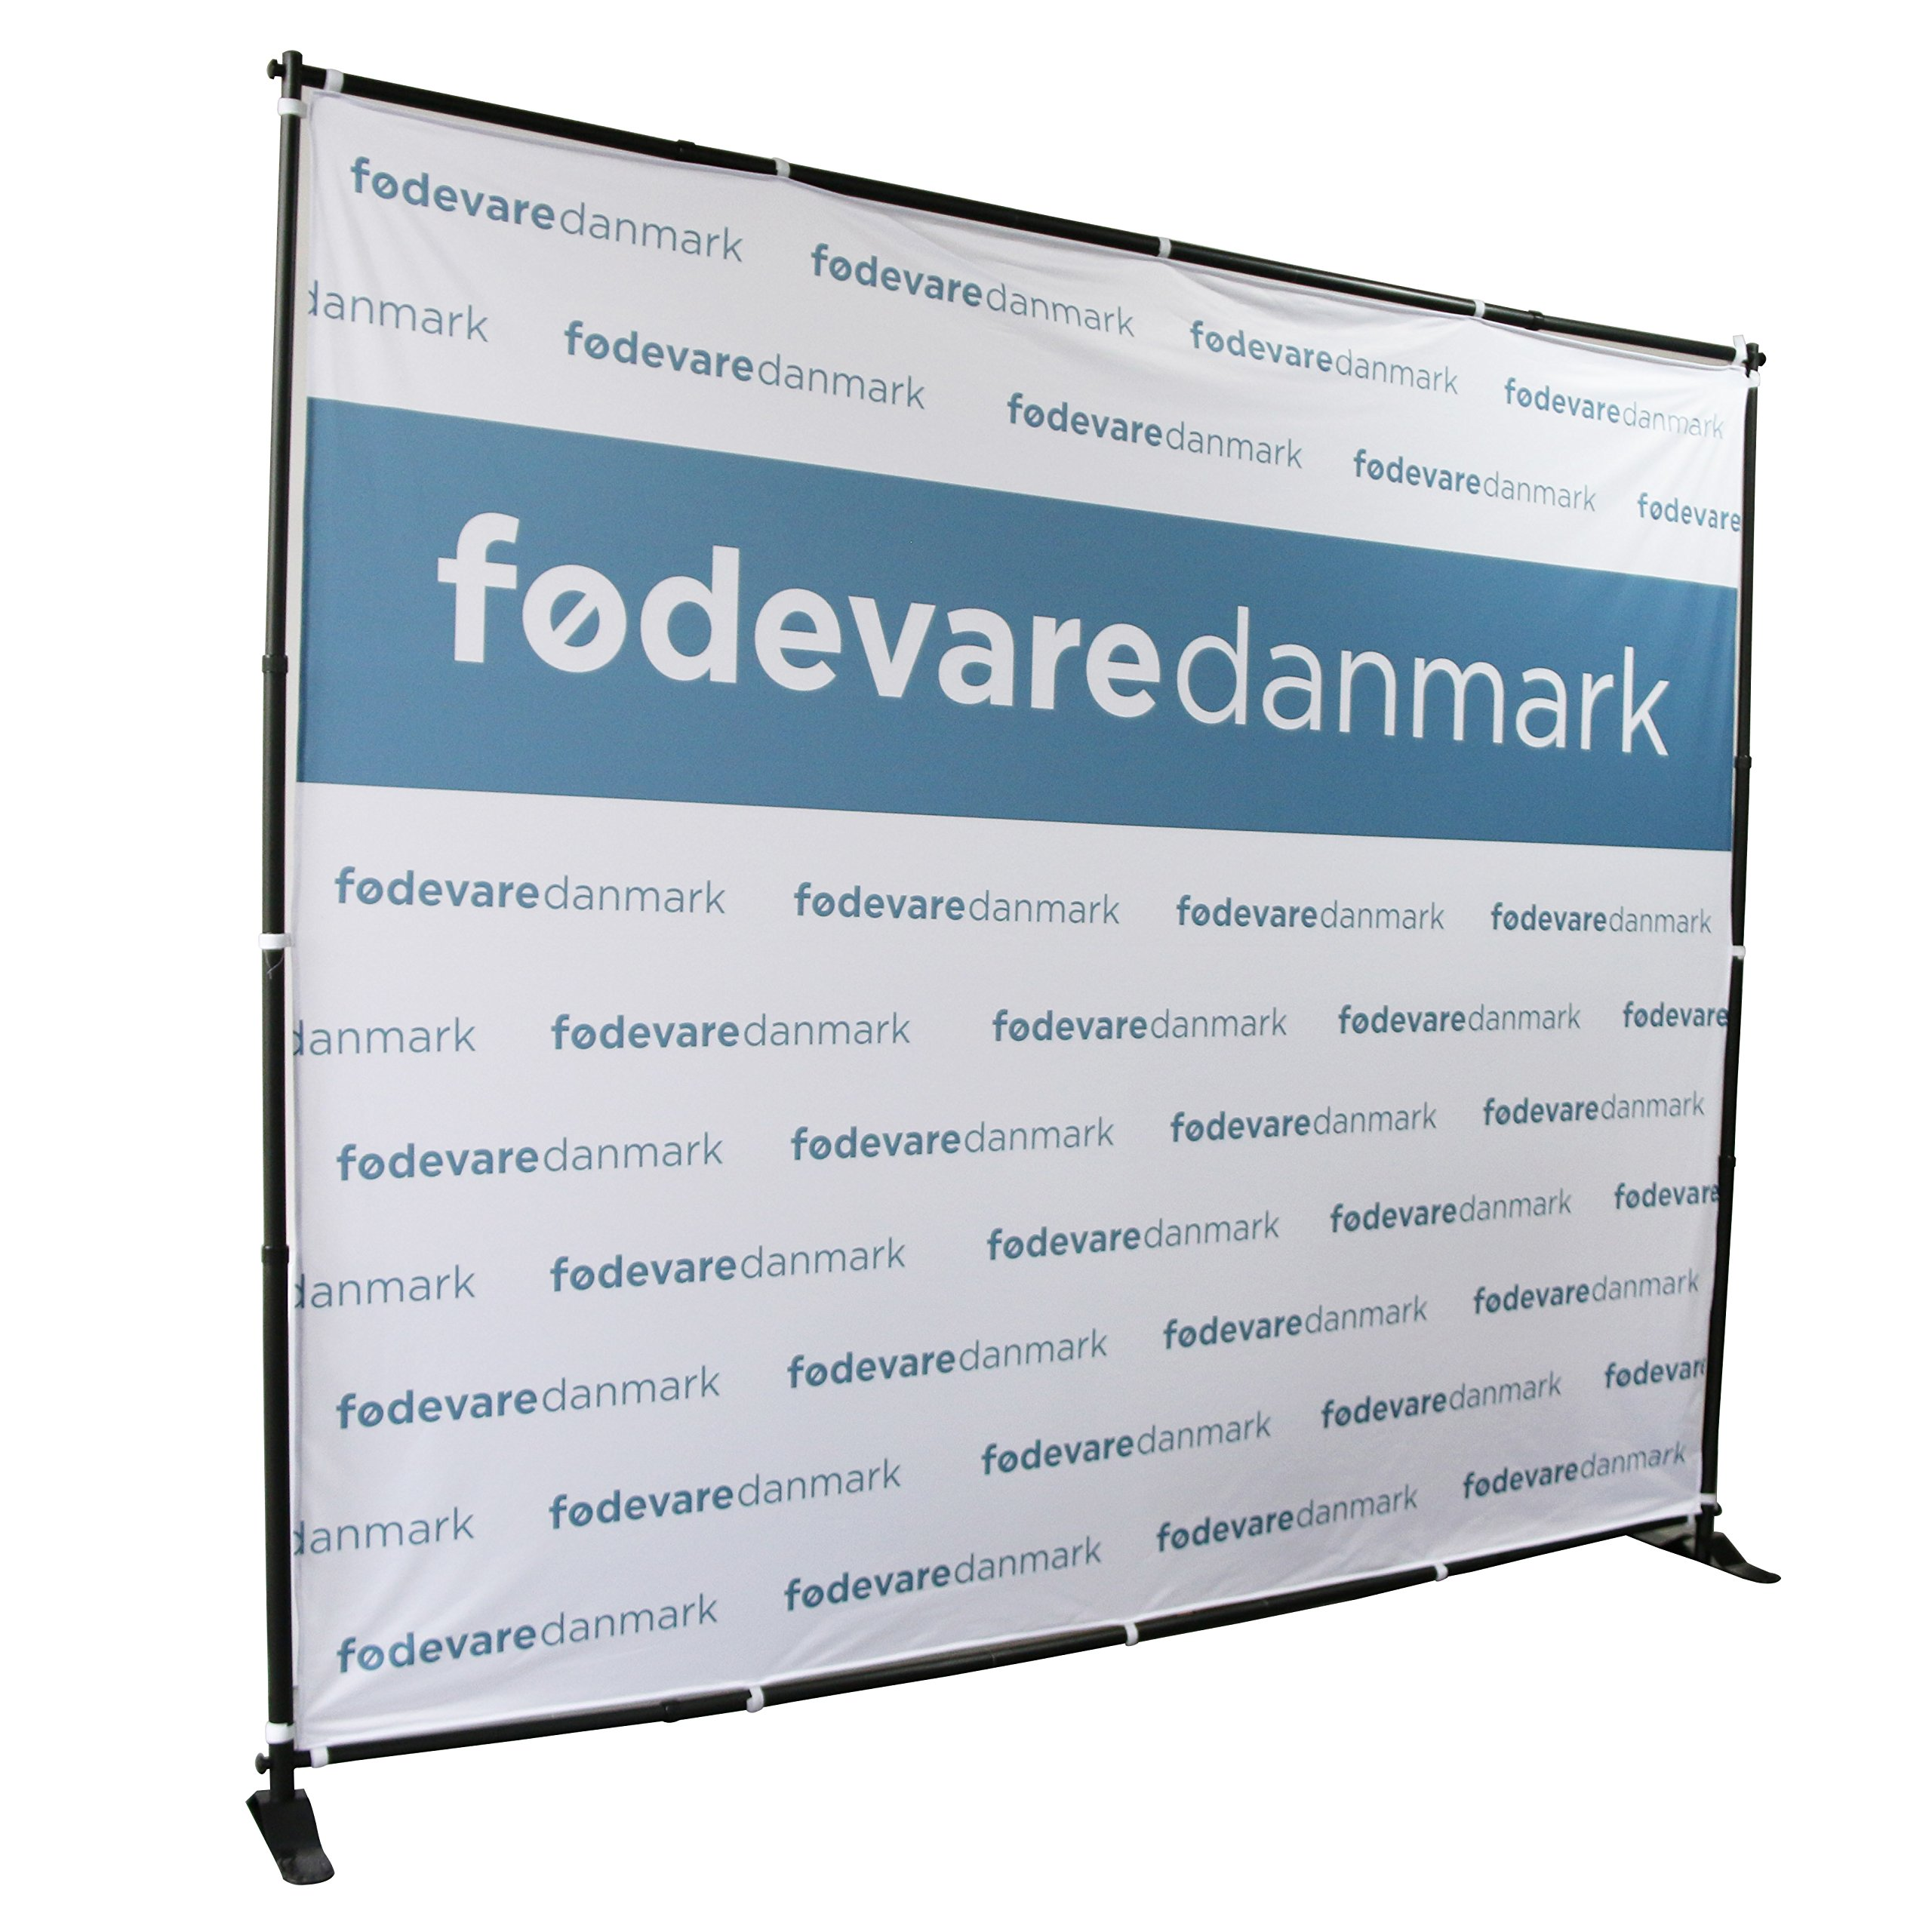 Displayfactory USA 8'x8' Professional Backdrop Banner Stand Large Tube Heavy Duty Telescopic Step and Repeat for Photo Booth Background and Trade Show with Carrying Bag